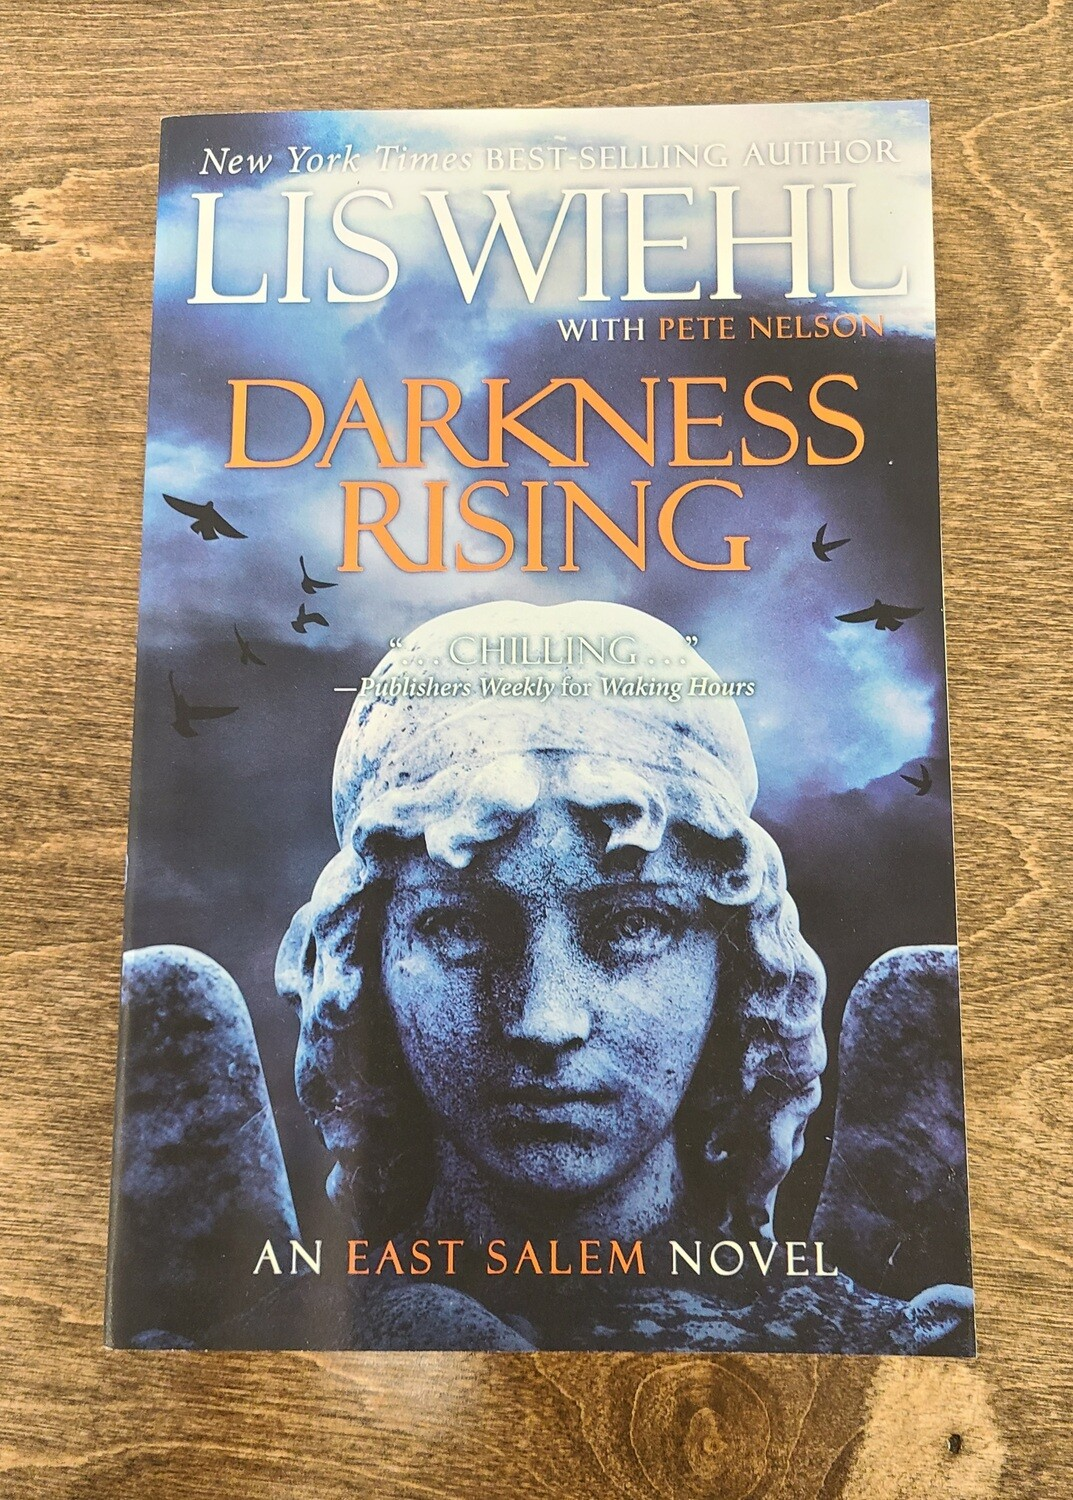 Darkness Rising by Lis Wiehl with Pete Nelson